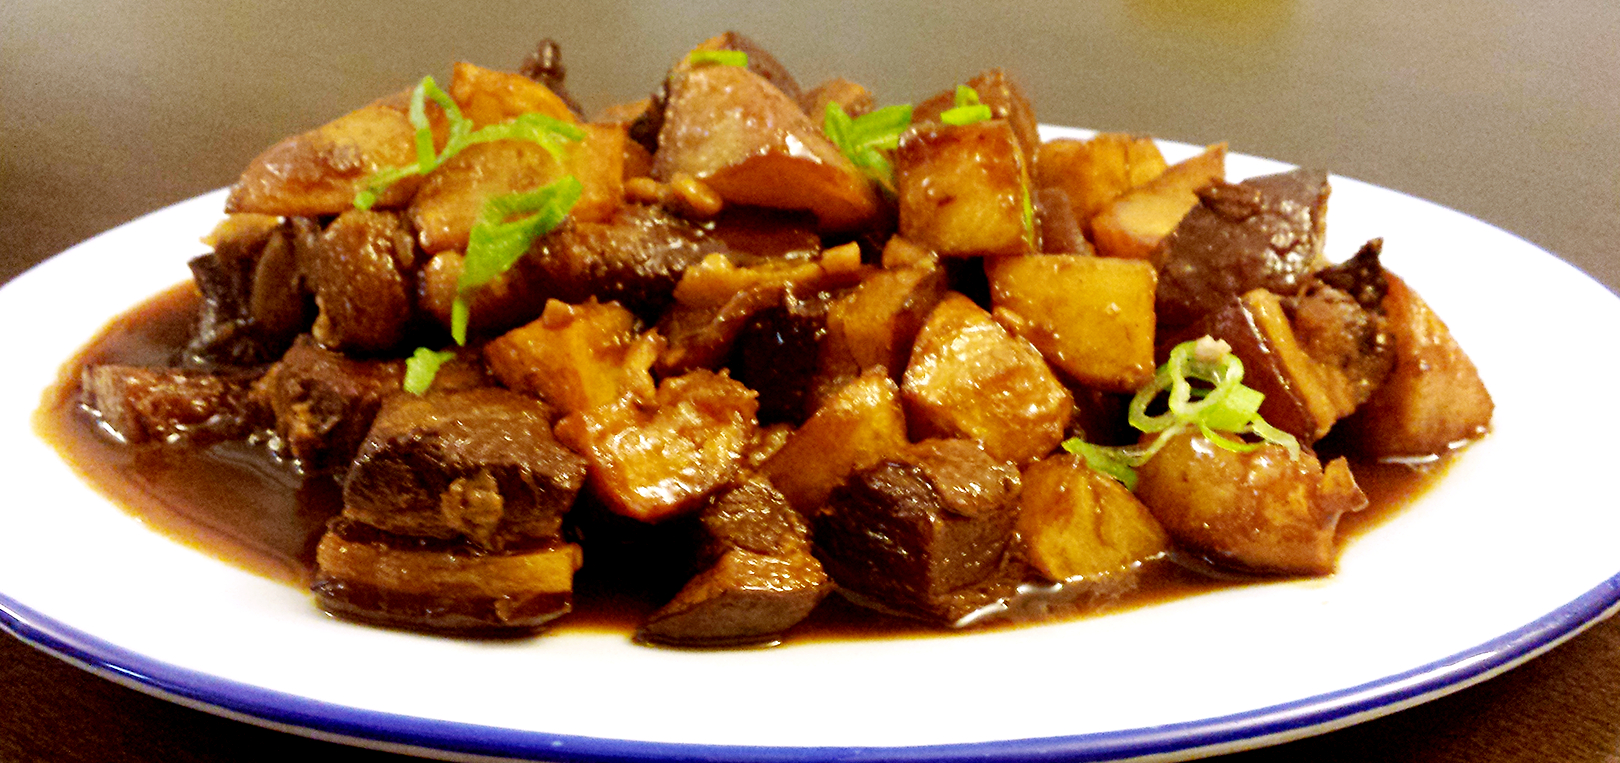 Hong Shao Rou with potatoes